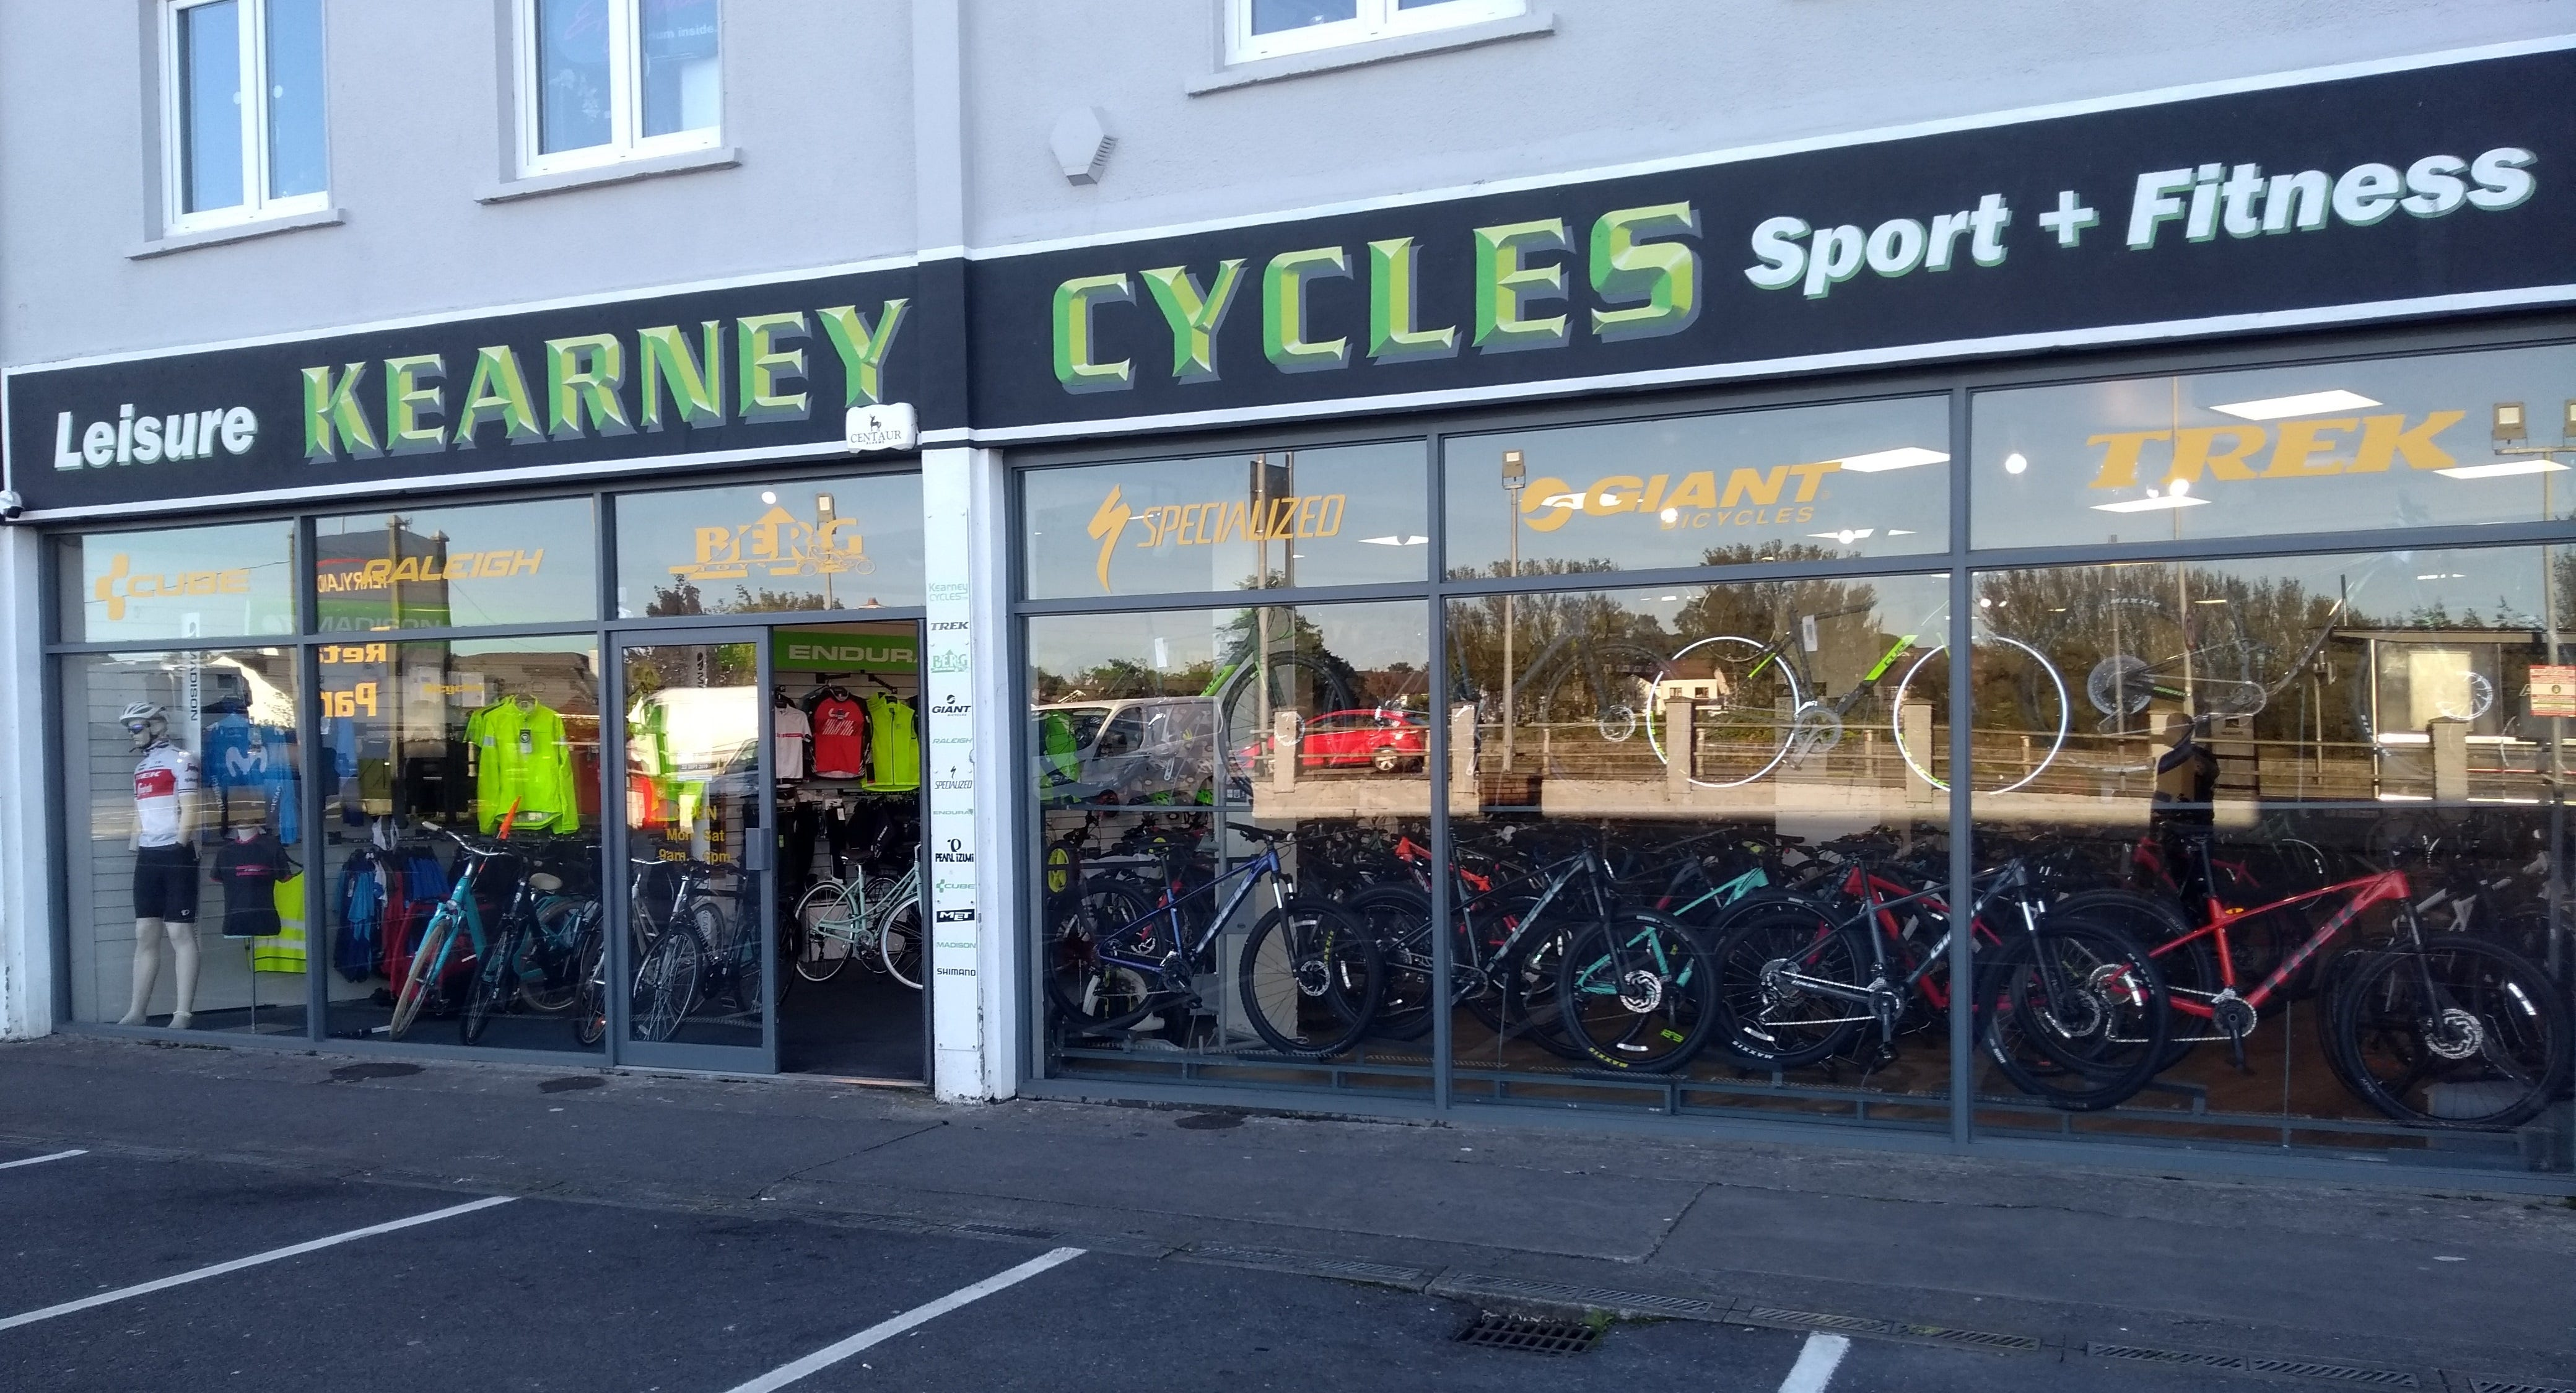 Kearney Cycles